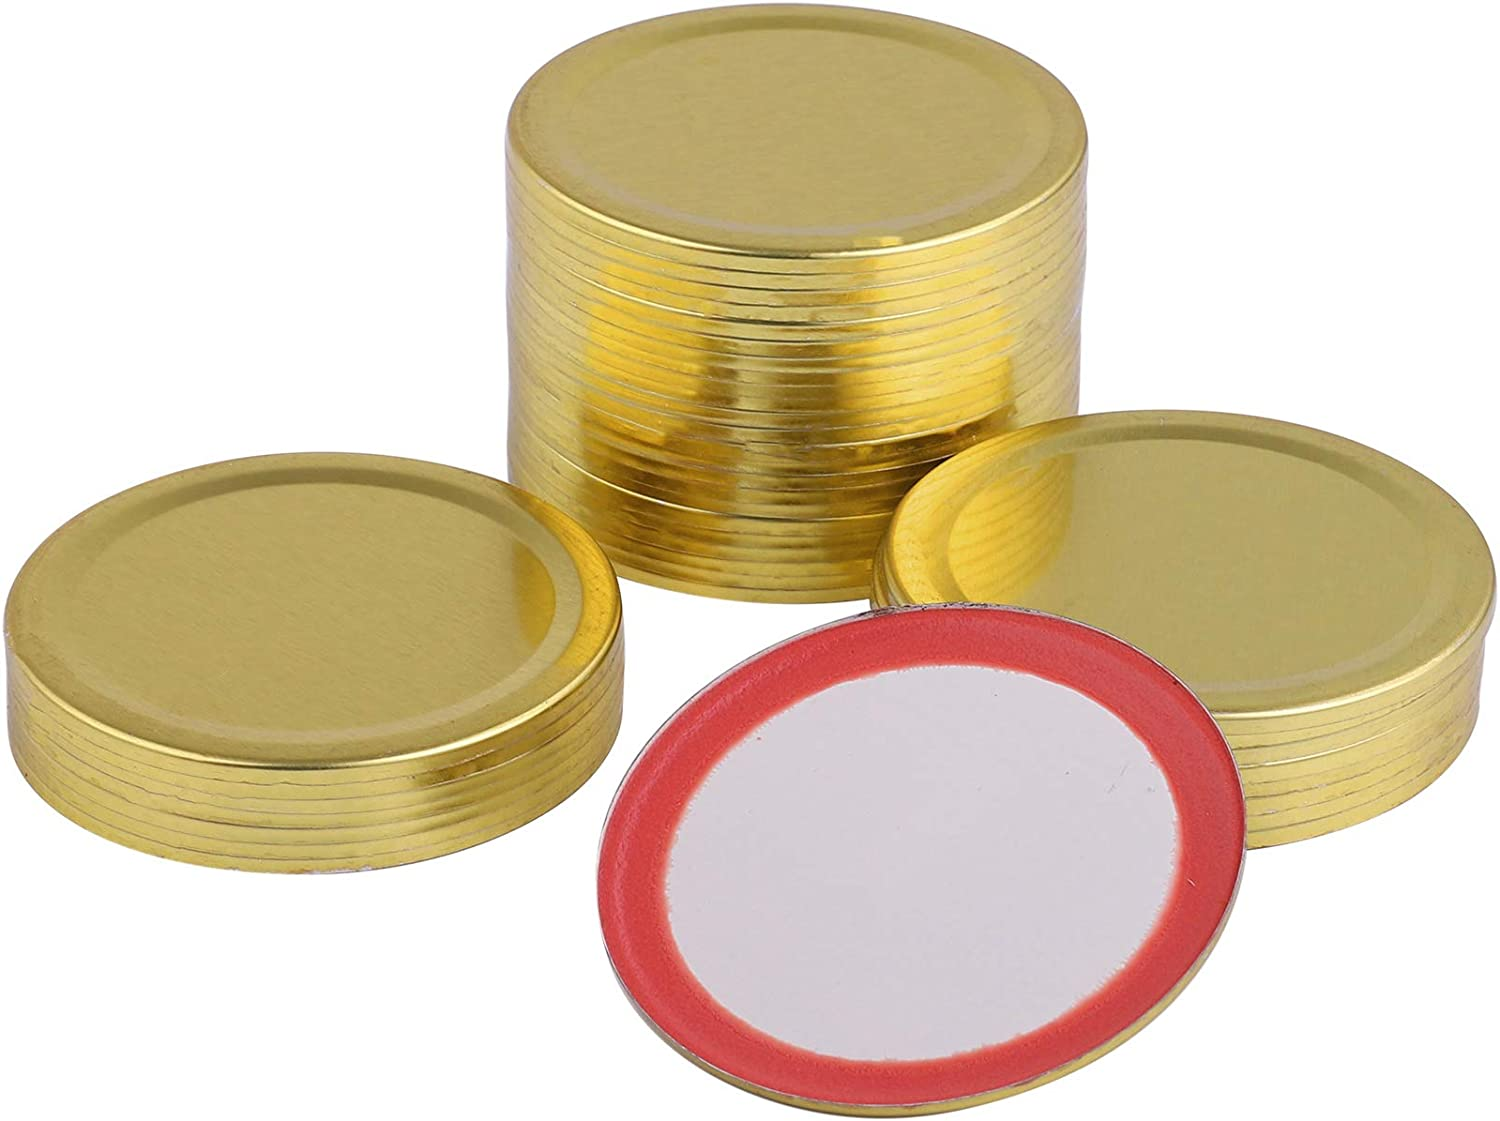 ADXCO 40 Pieces Regular Mouth Mason Jar Lids Band Tinplate Split-type Canning Jar Caps Food-grade Storage Caps Band with Silicone